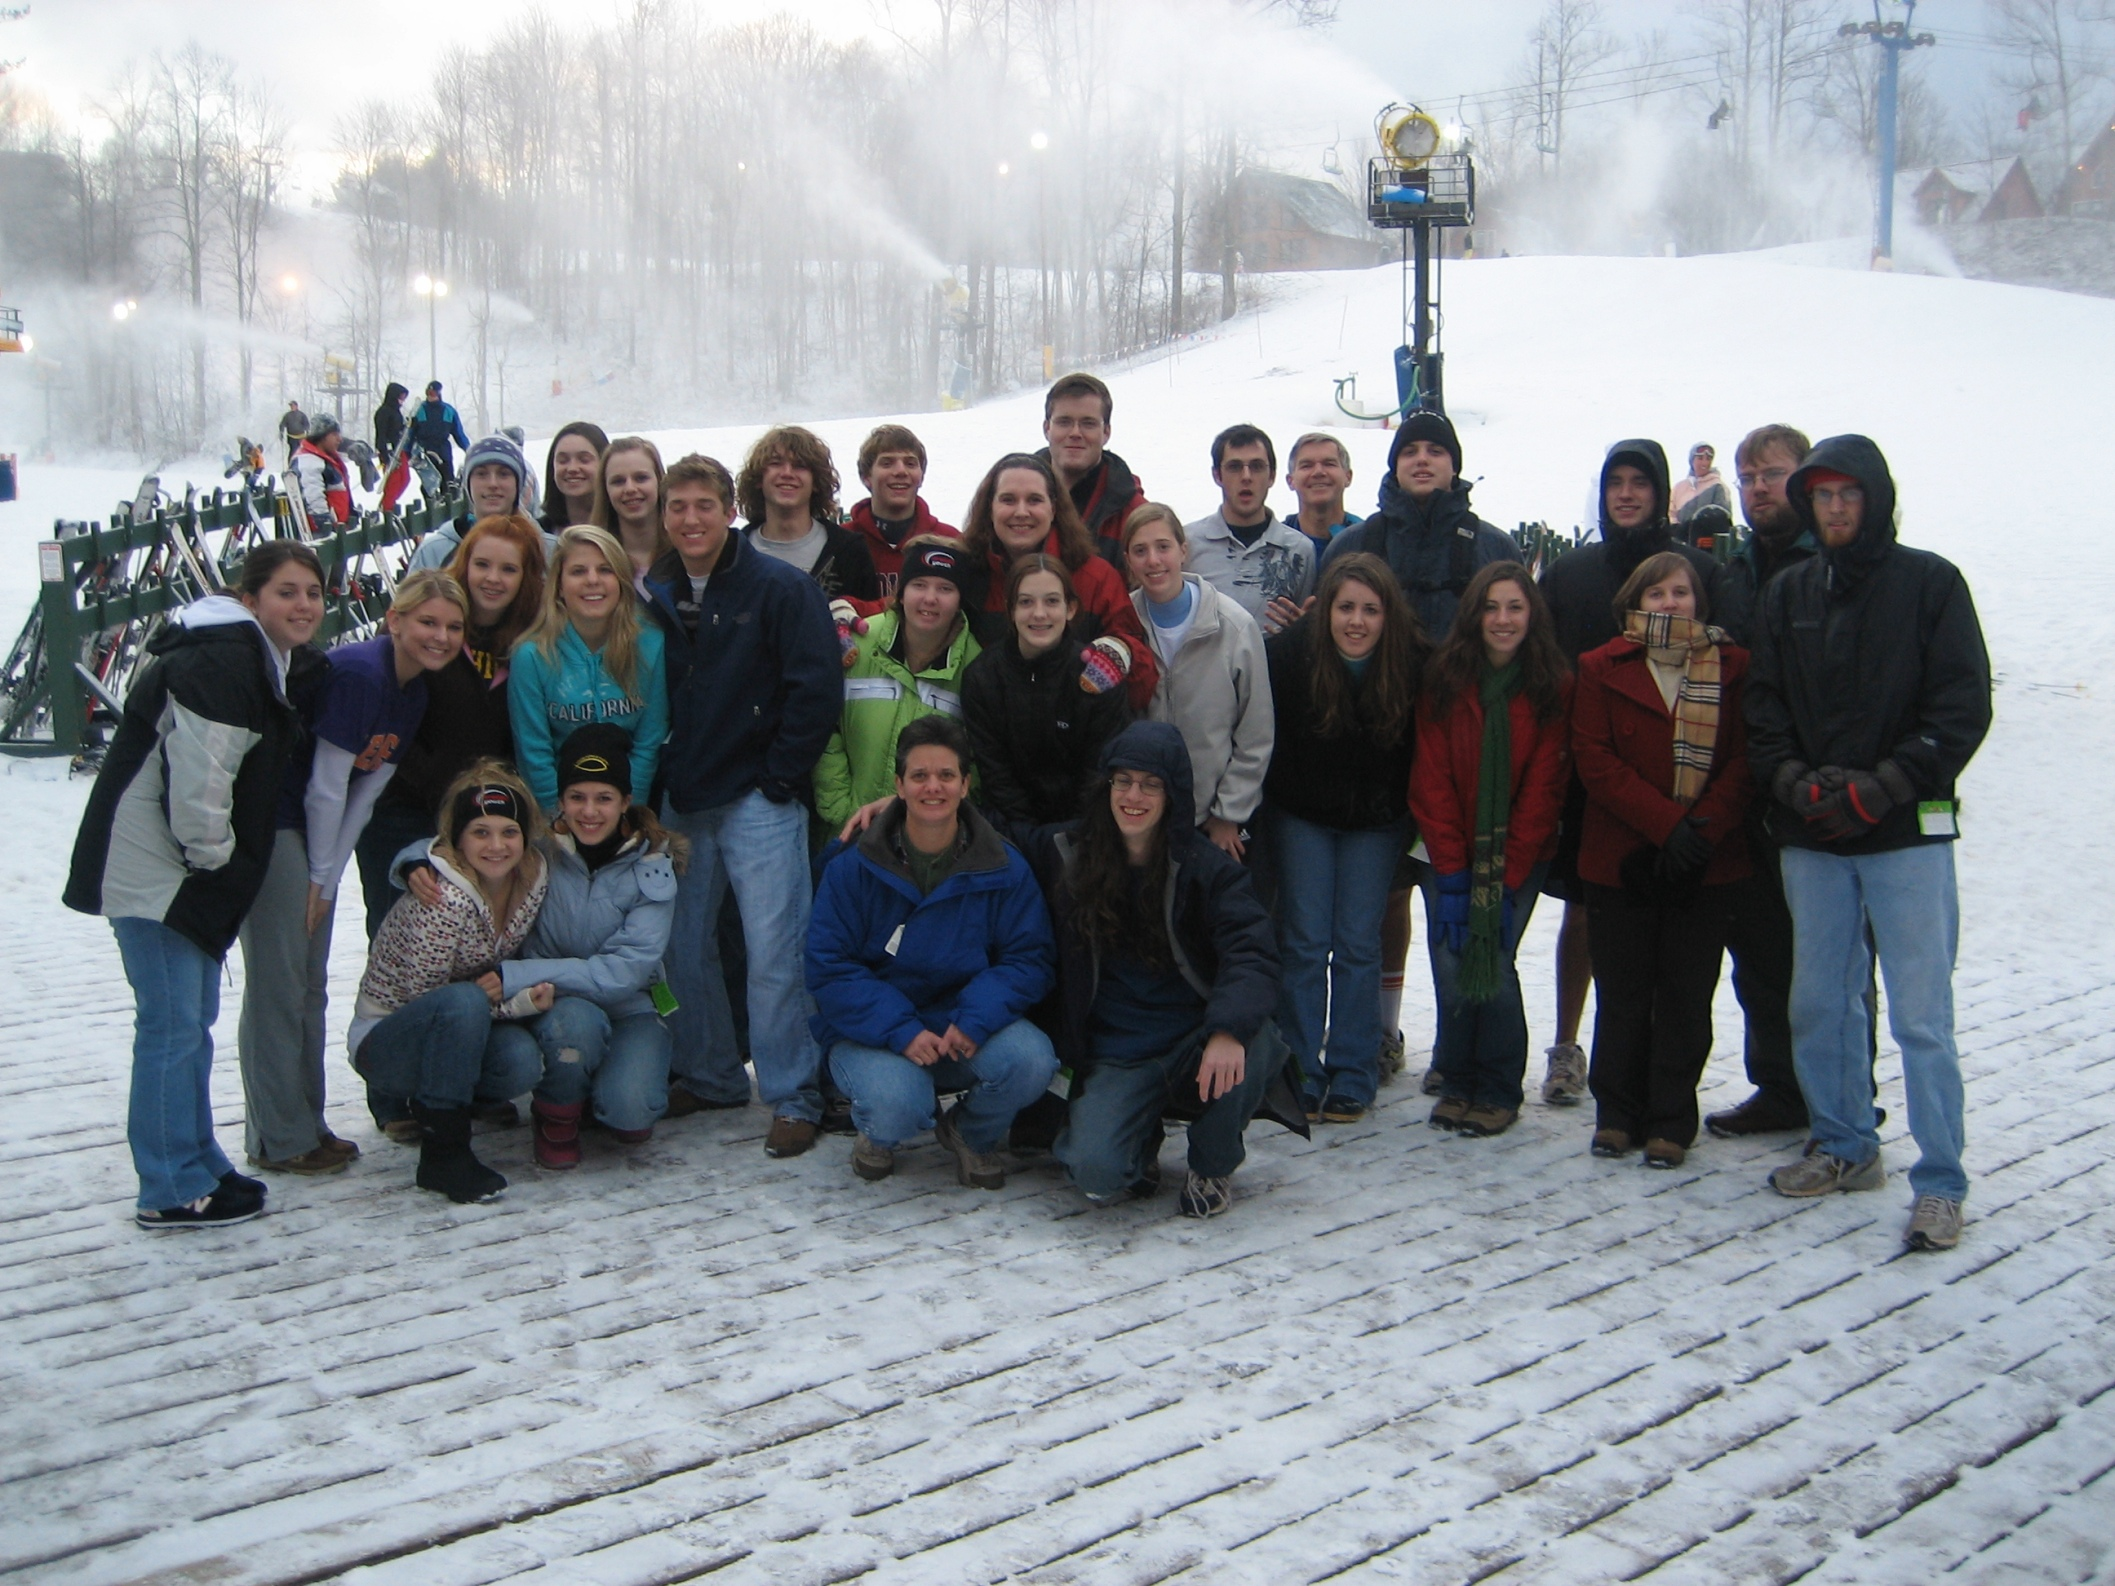 Group Picture at Winterplace